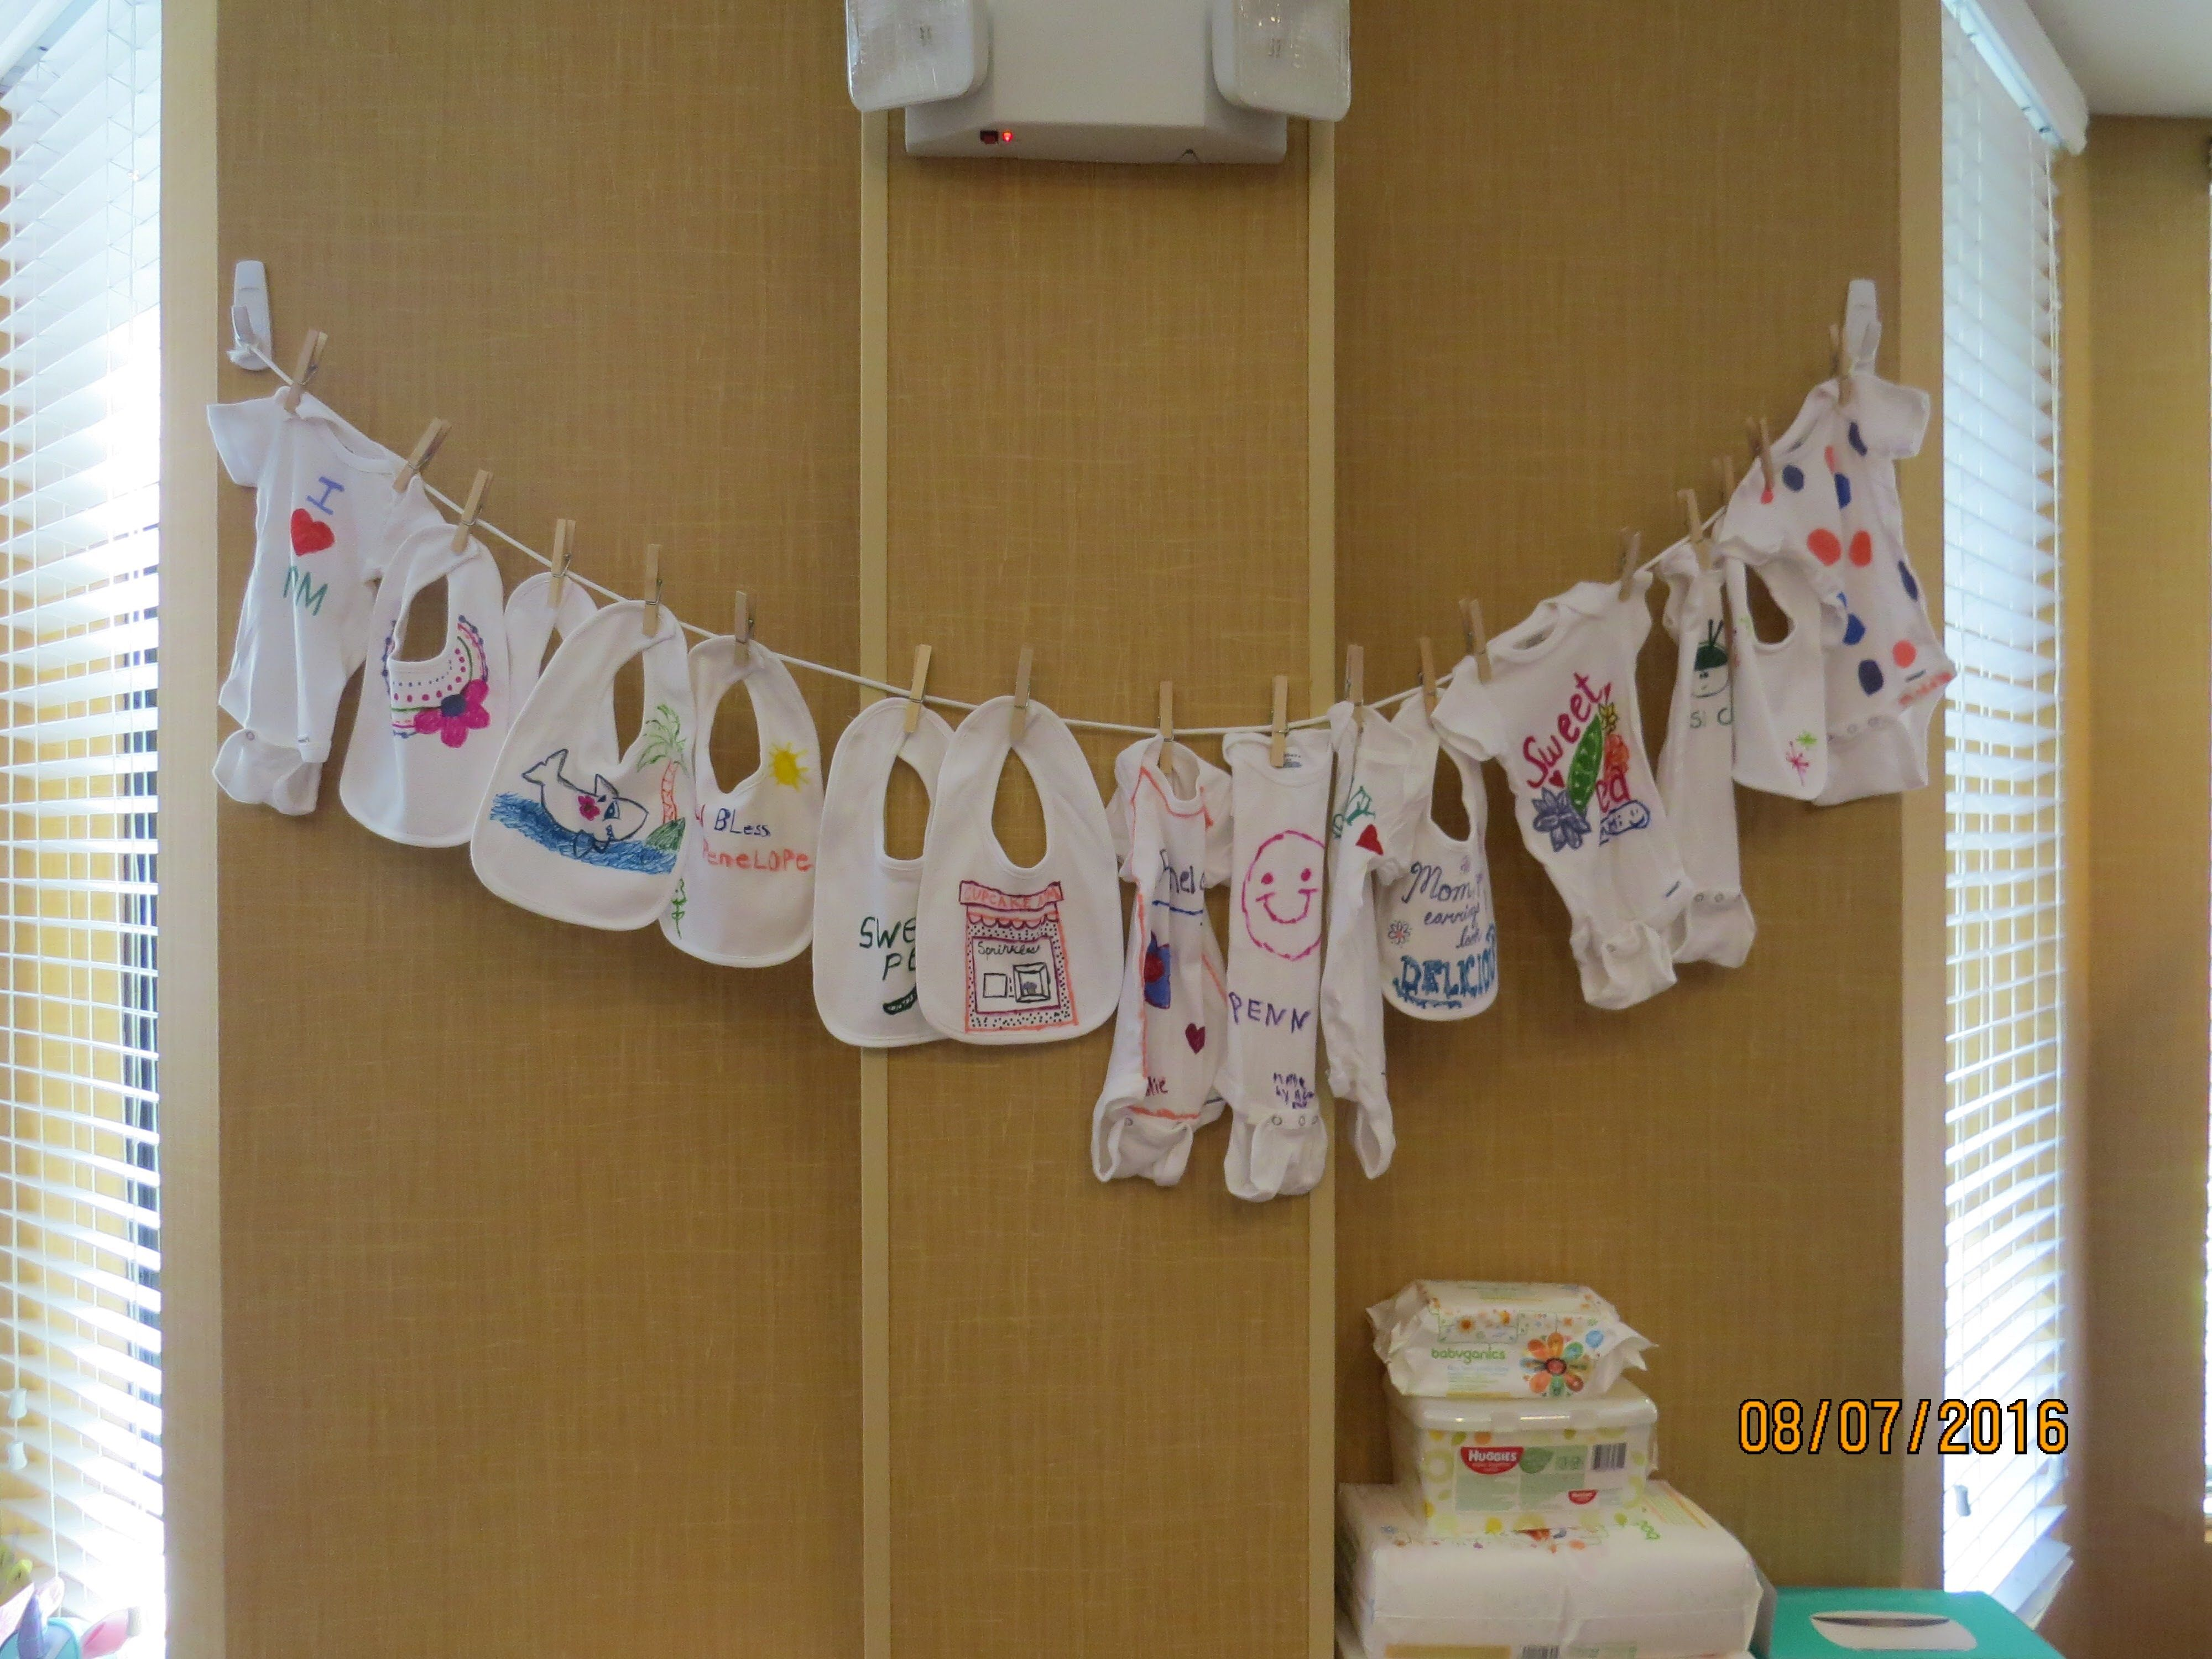 Decorate Baby Bibs We Had A Bib Or Onsie At Each Table To Decorate Baby Shower For